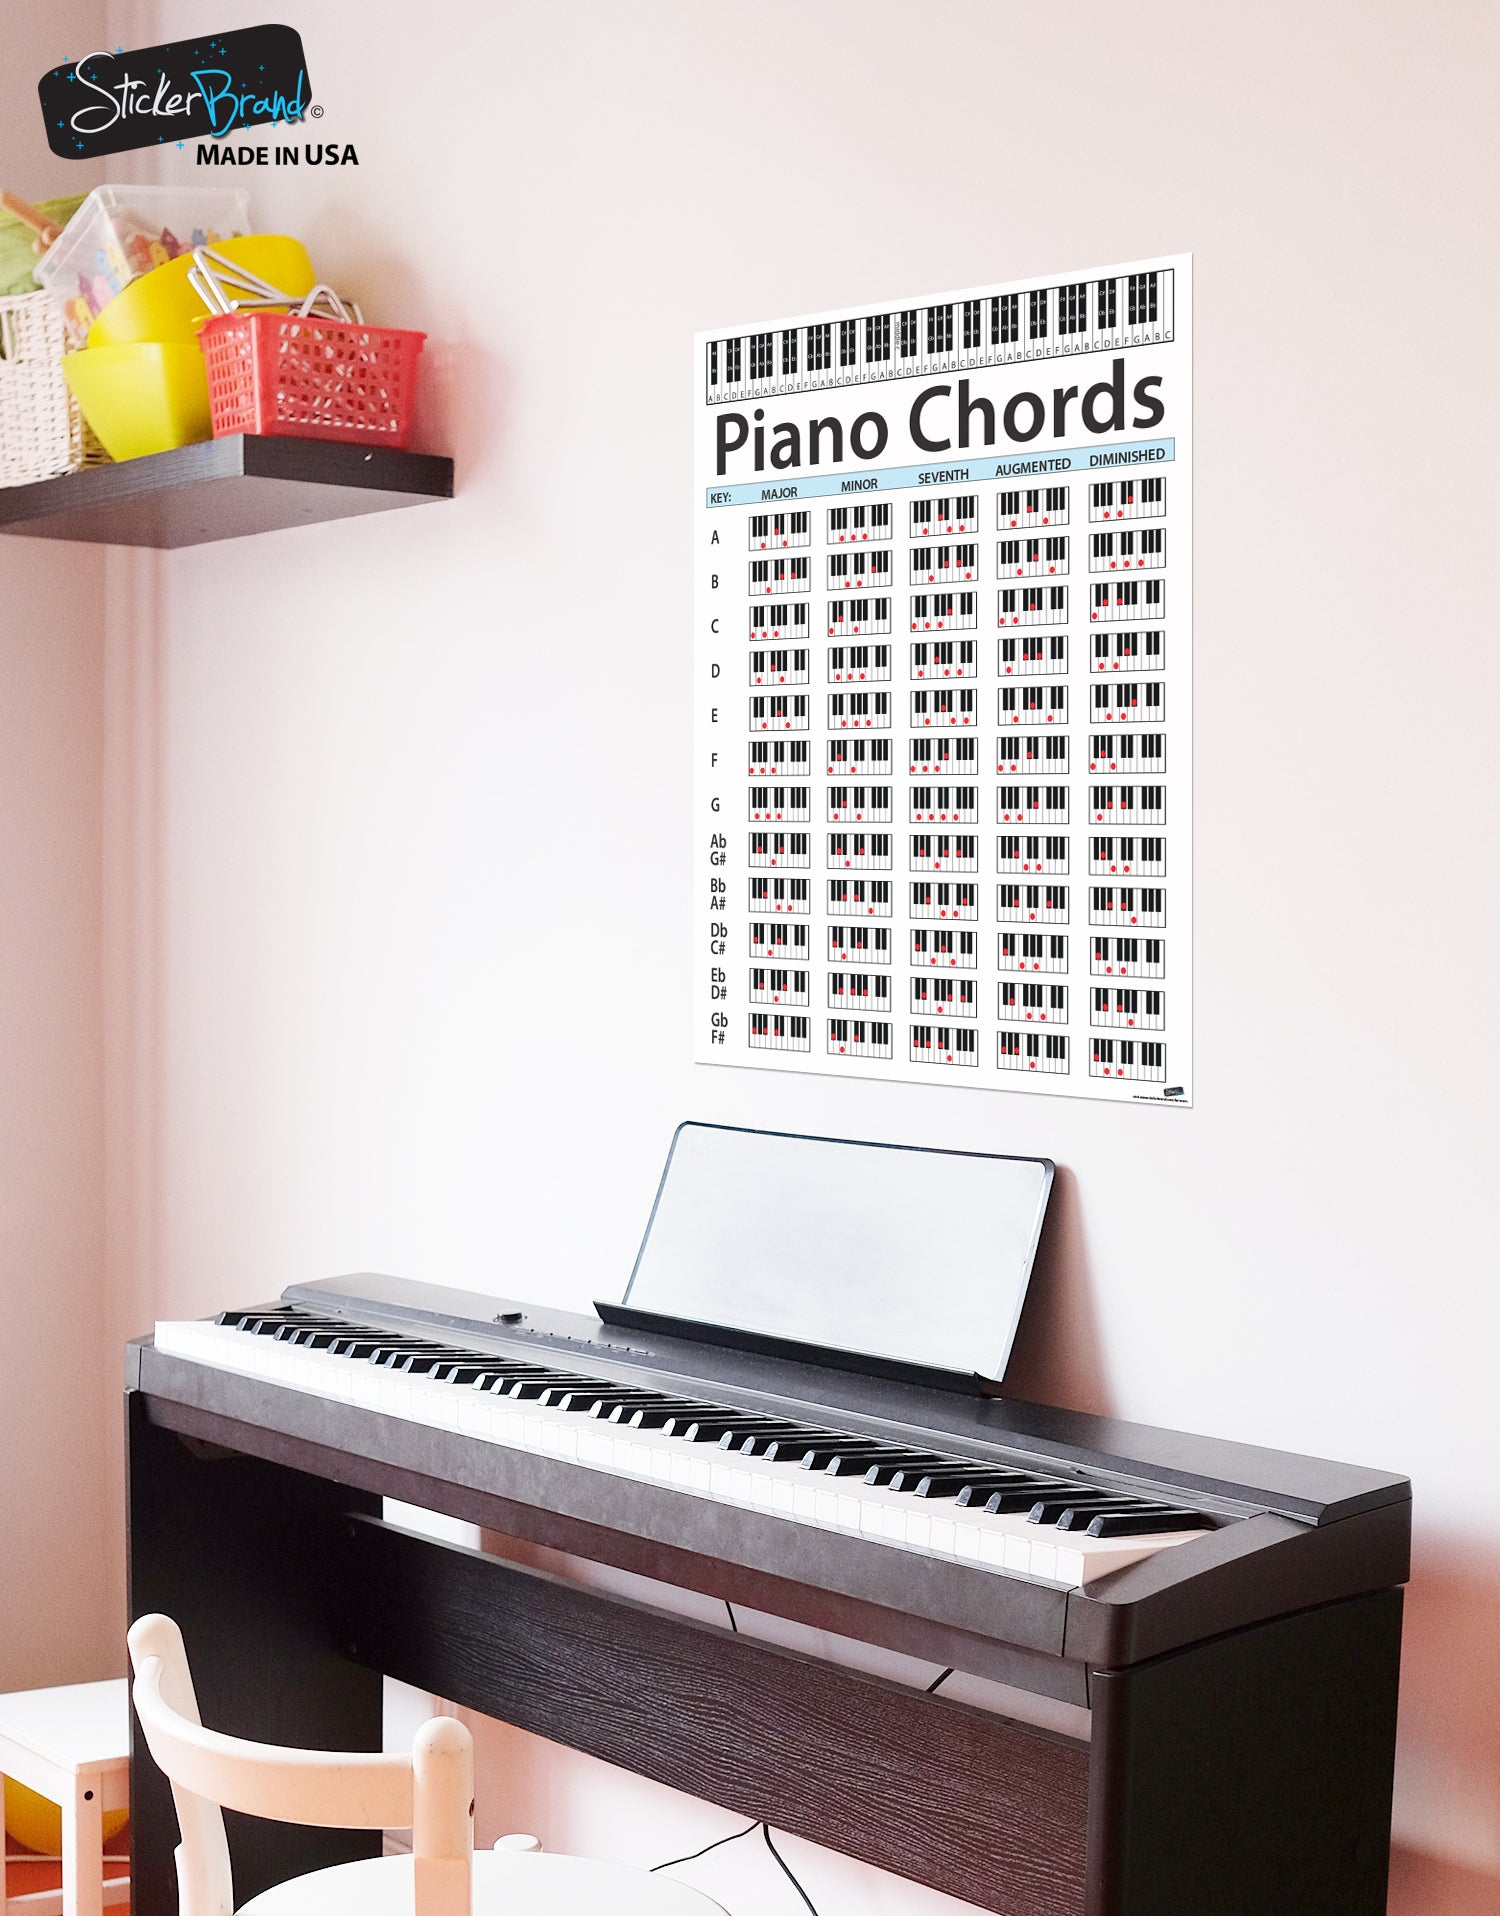 Piano Chord Chart Poster Educational Handy Guide Print For Keyboard Music Lessons P1001